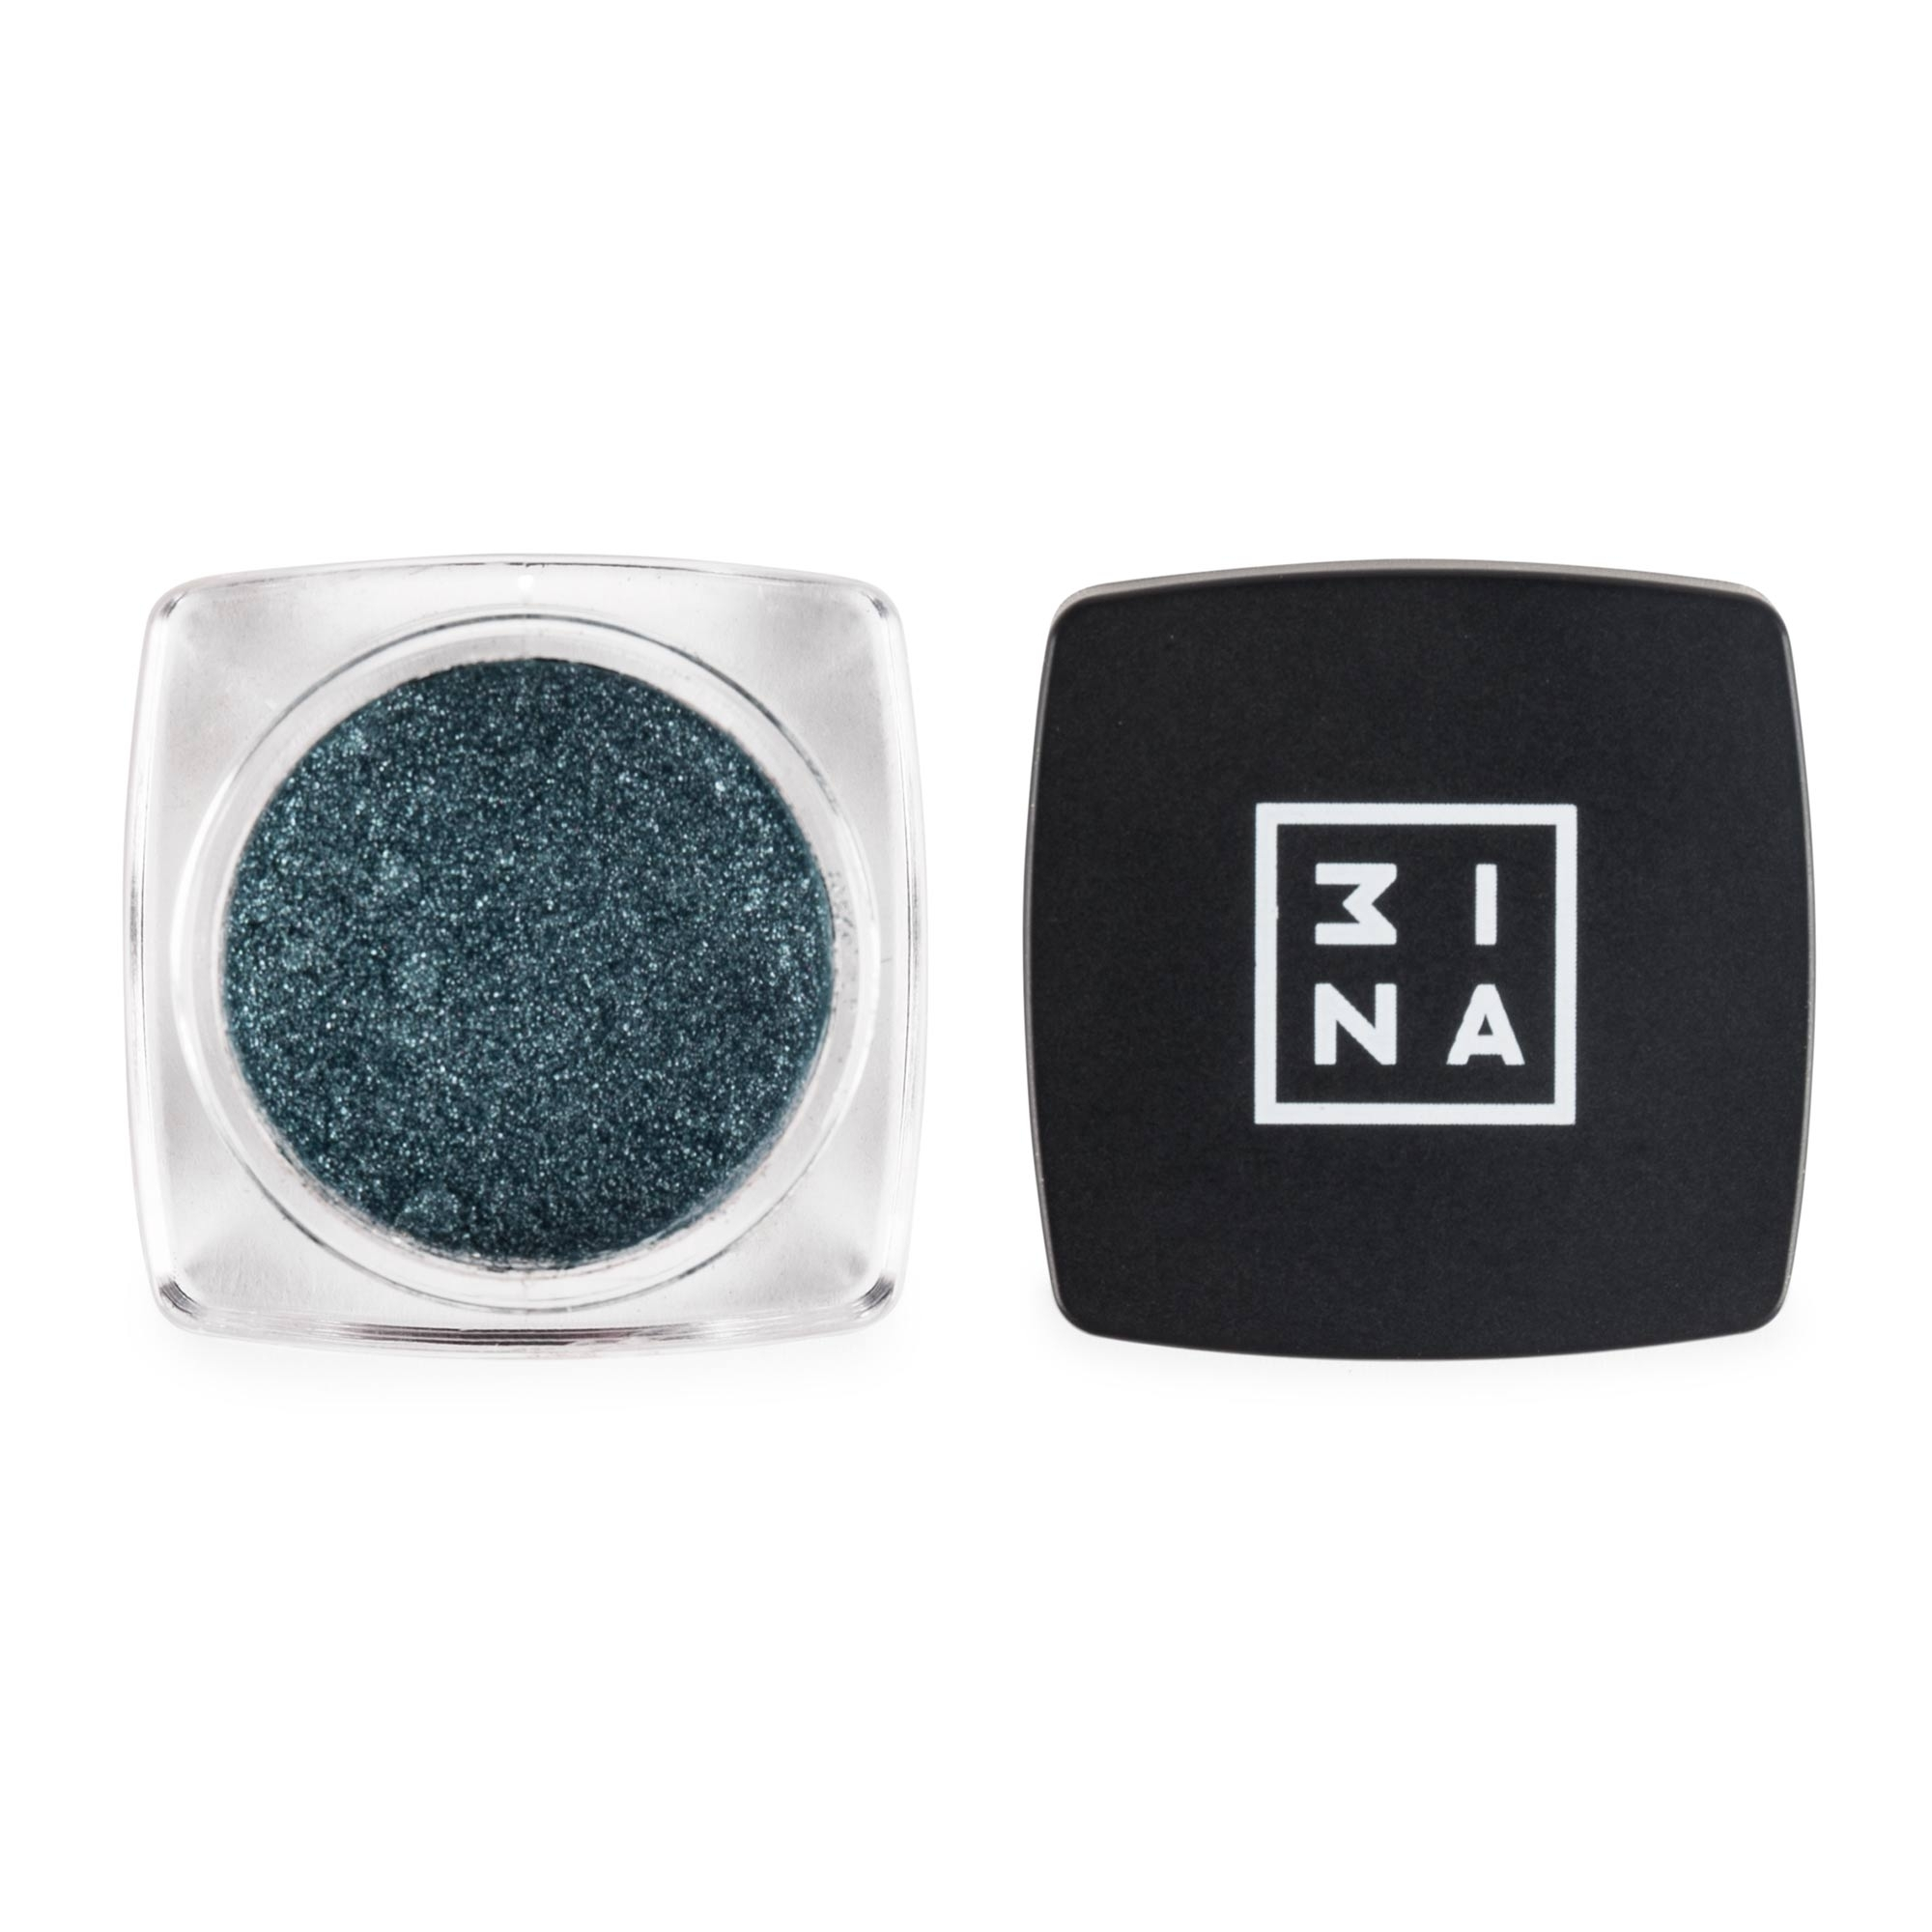 3INA Makeup | The Loose Particle Eyeshadow Holographic